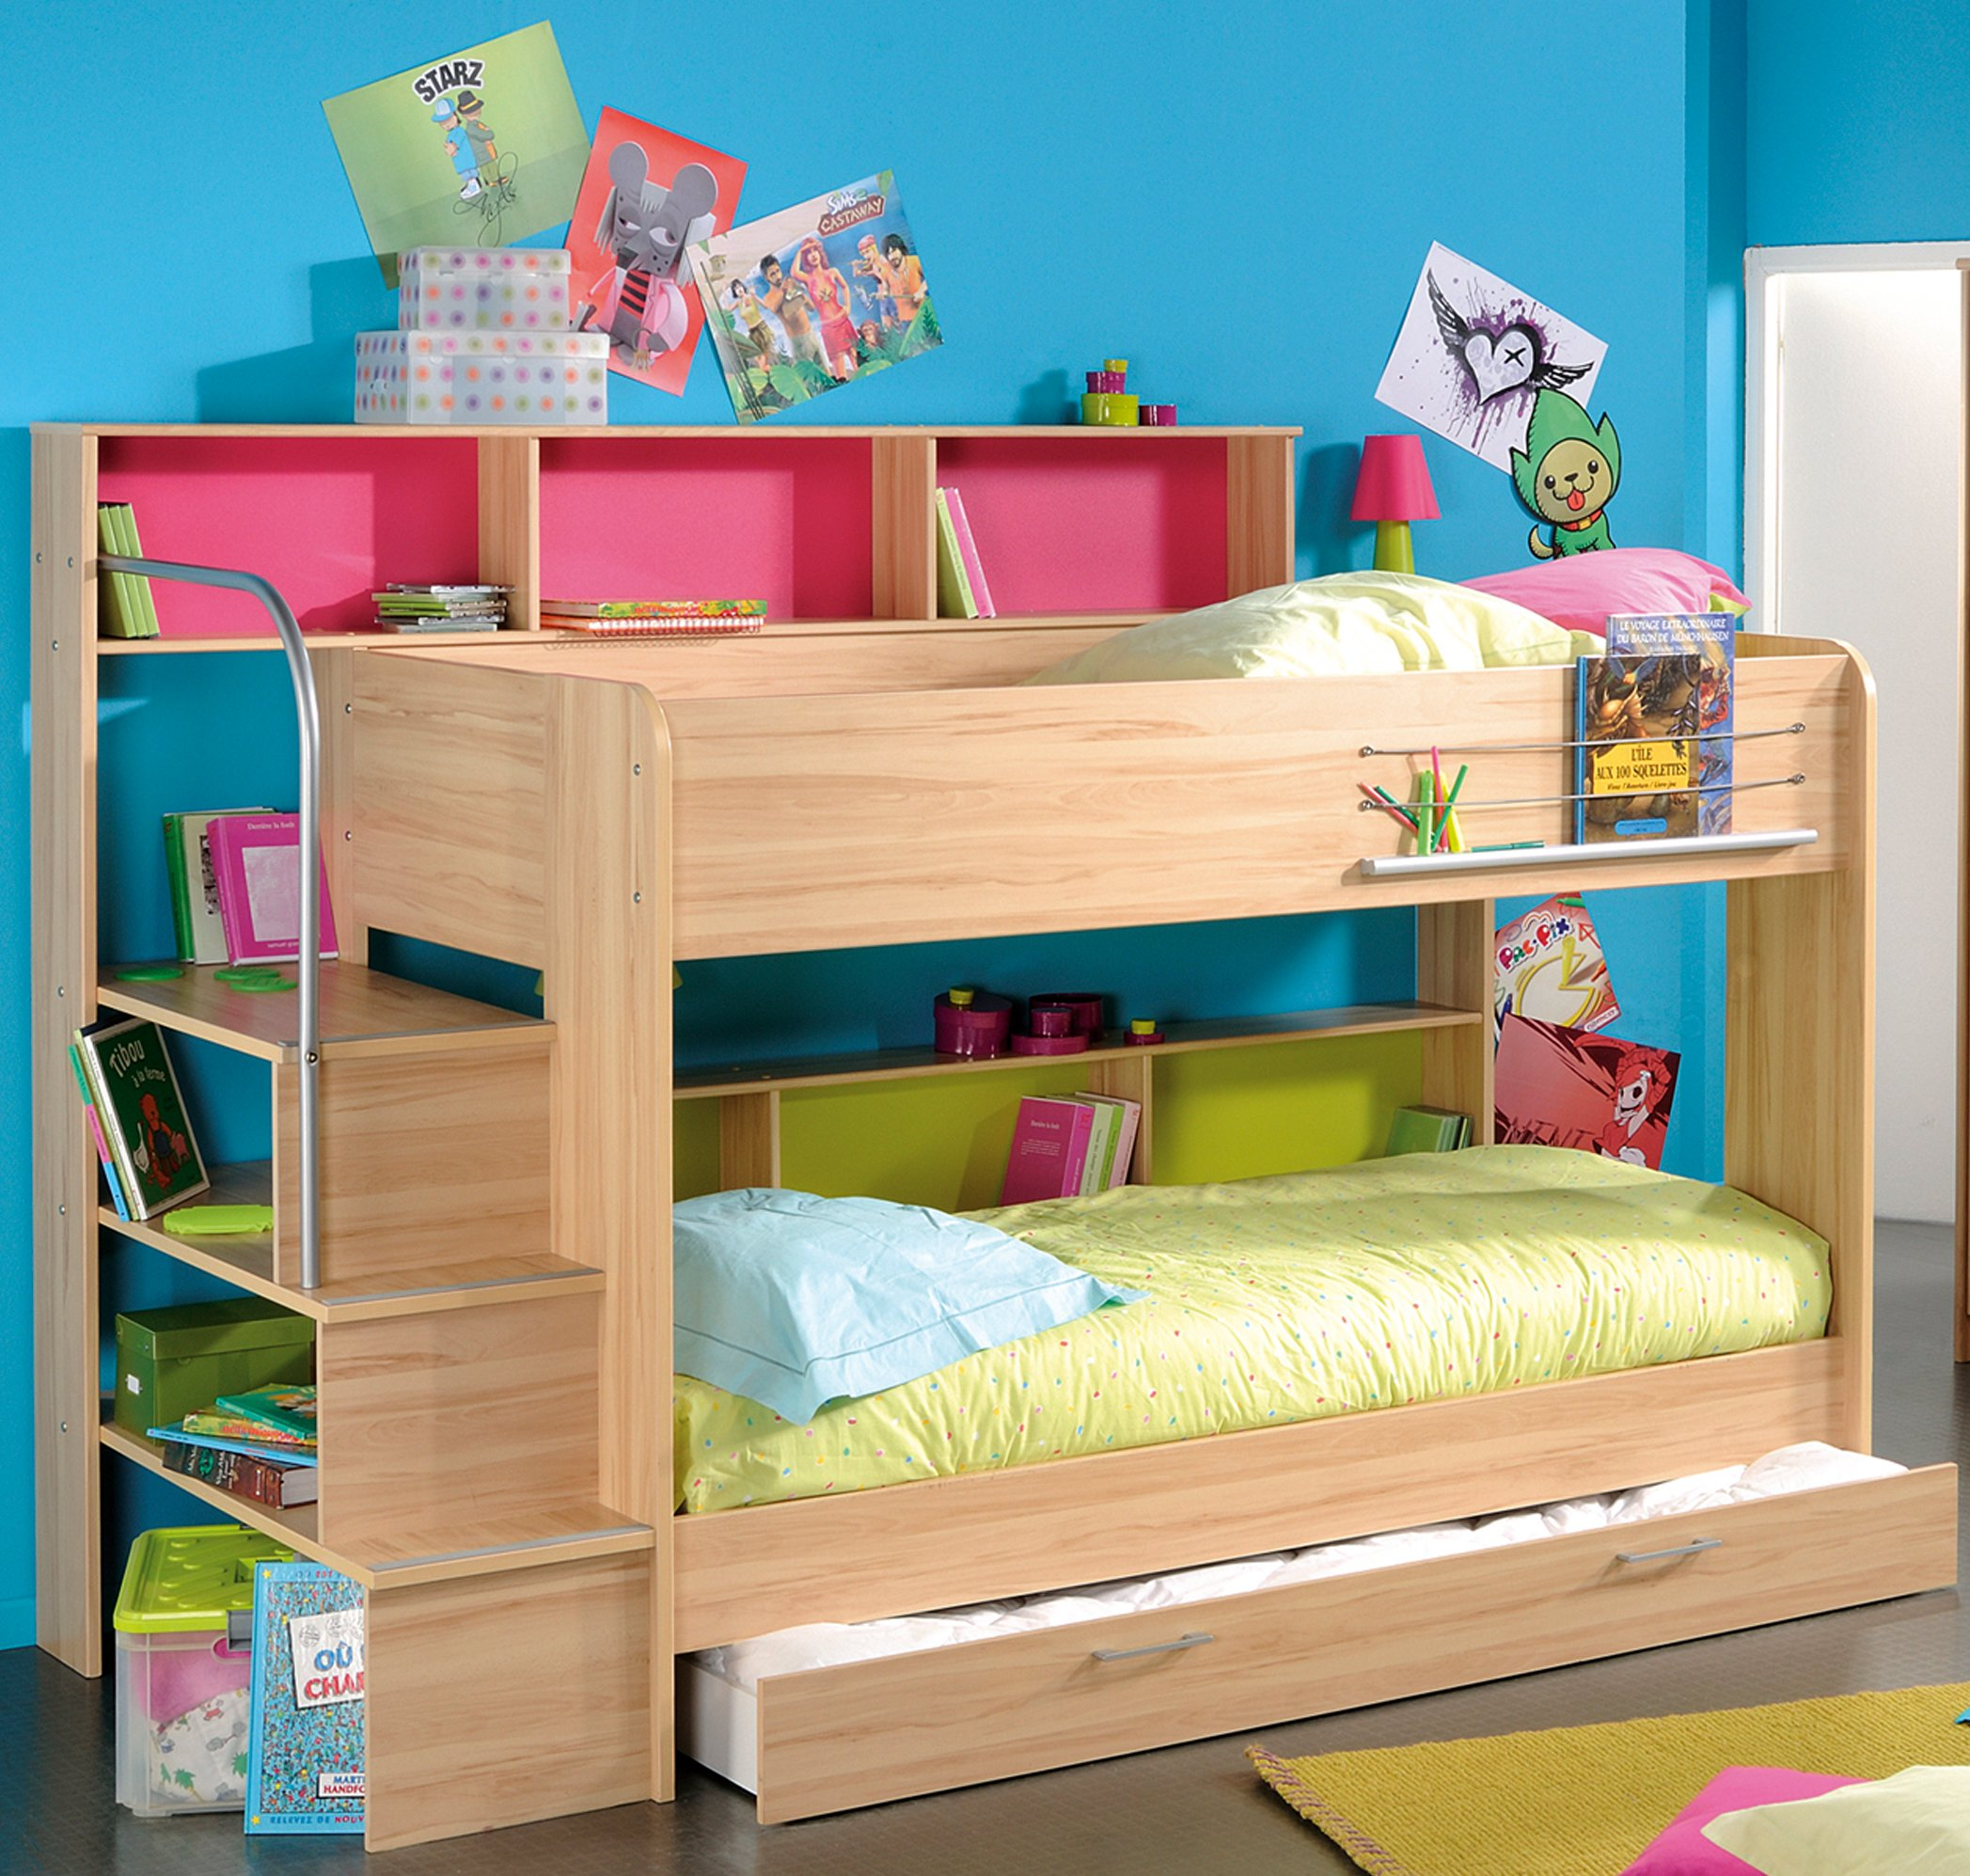 trendy-ikea-bunk-bed-design-models-for-kids-boy-by-feature-solid-beech-oak-loft-beds-trundle-with-pink-and-blue-open-storage-plus-side-left-stairs-using-stainless-steel-handrails